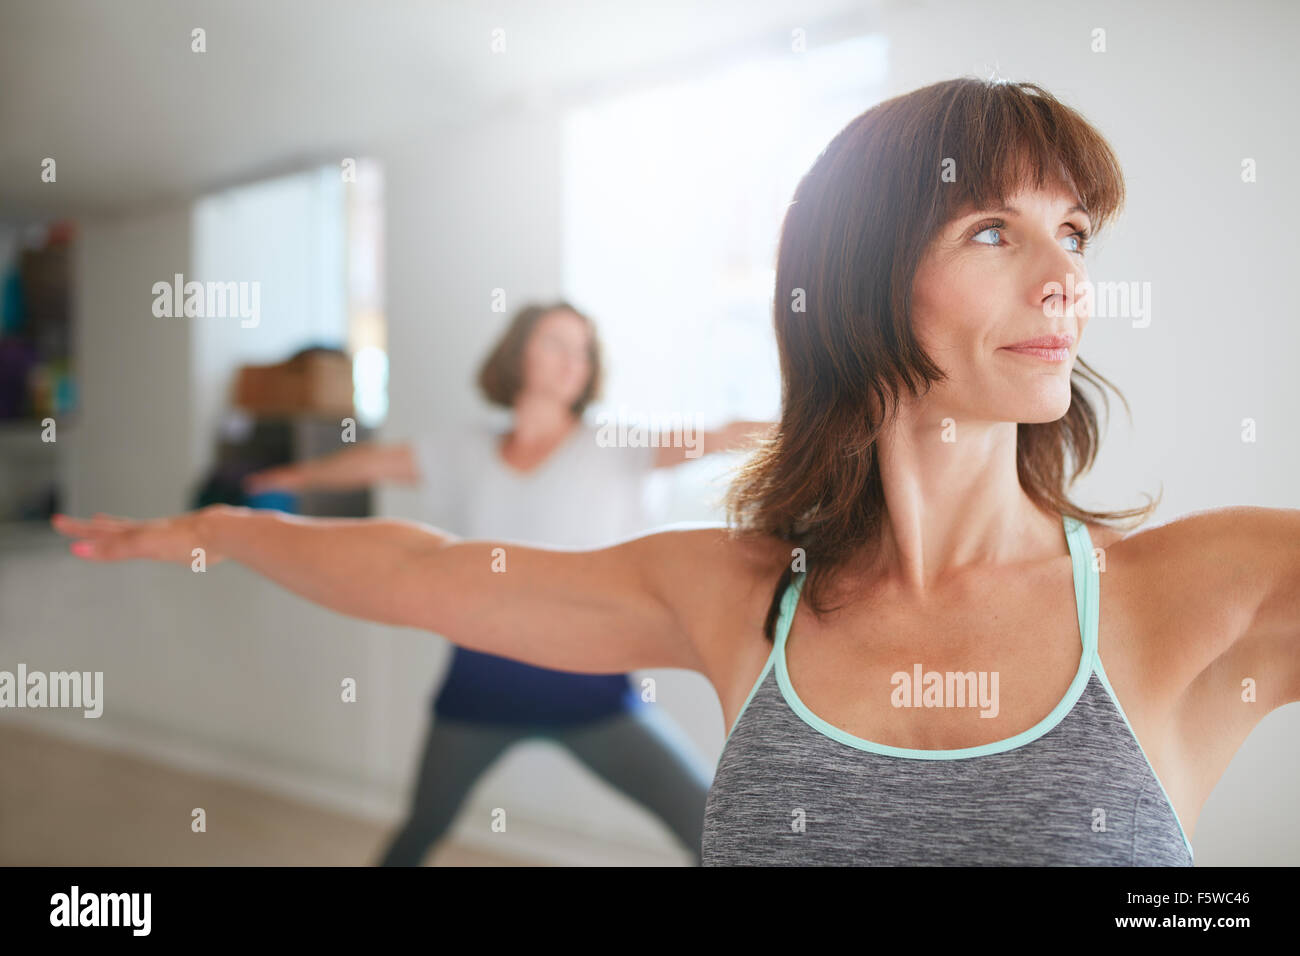 Portrait of beautiful young woman doing the warrior pose during yoga class. Yoga instructor performing Virabhadrasana - Stock Image